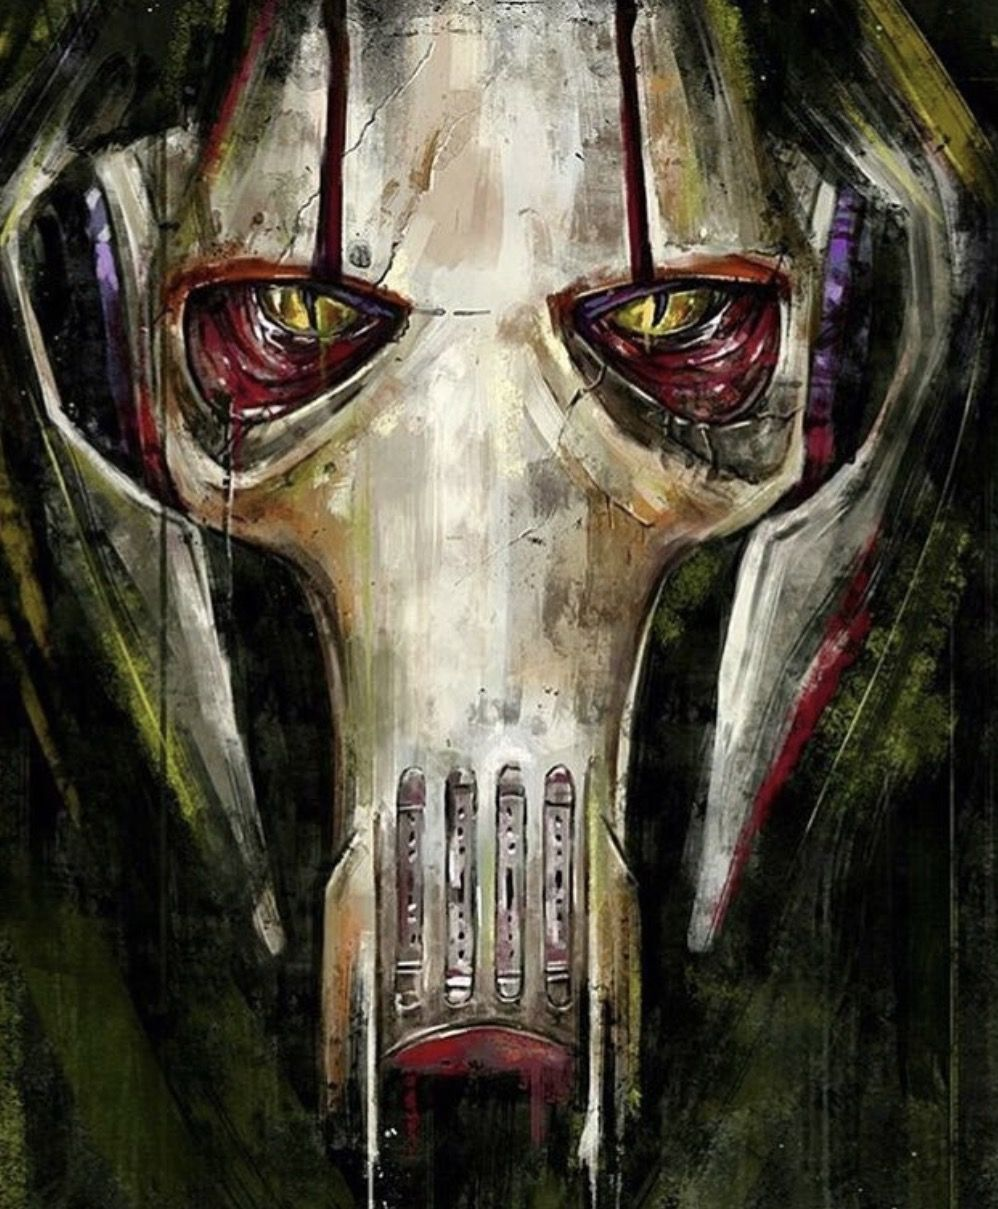 General Grievous Wallpaper Hd Kyt Artistic Desktop Hd